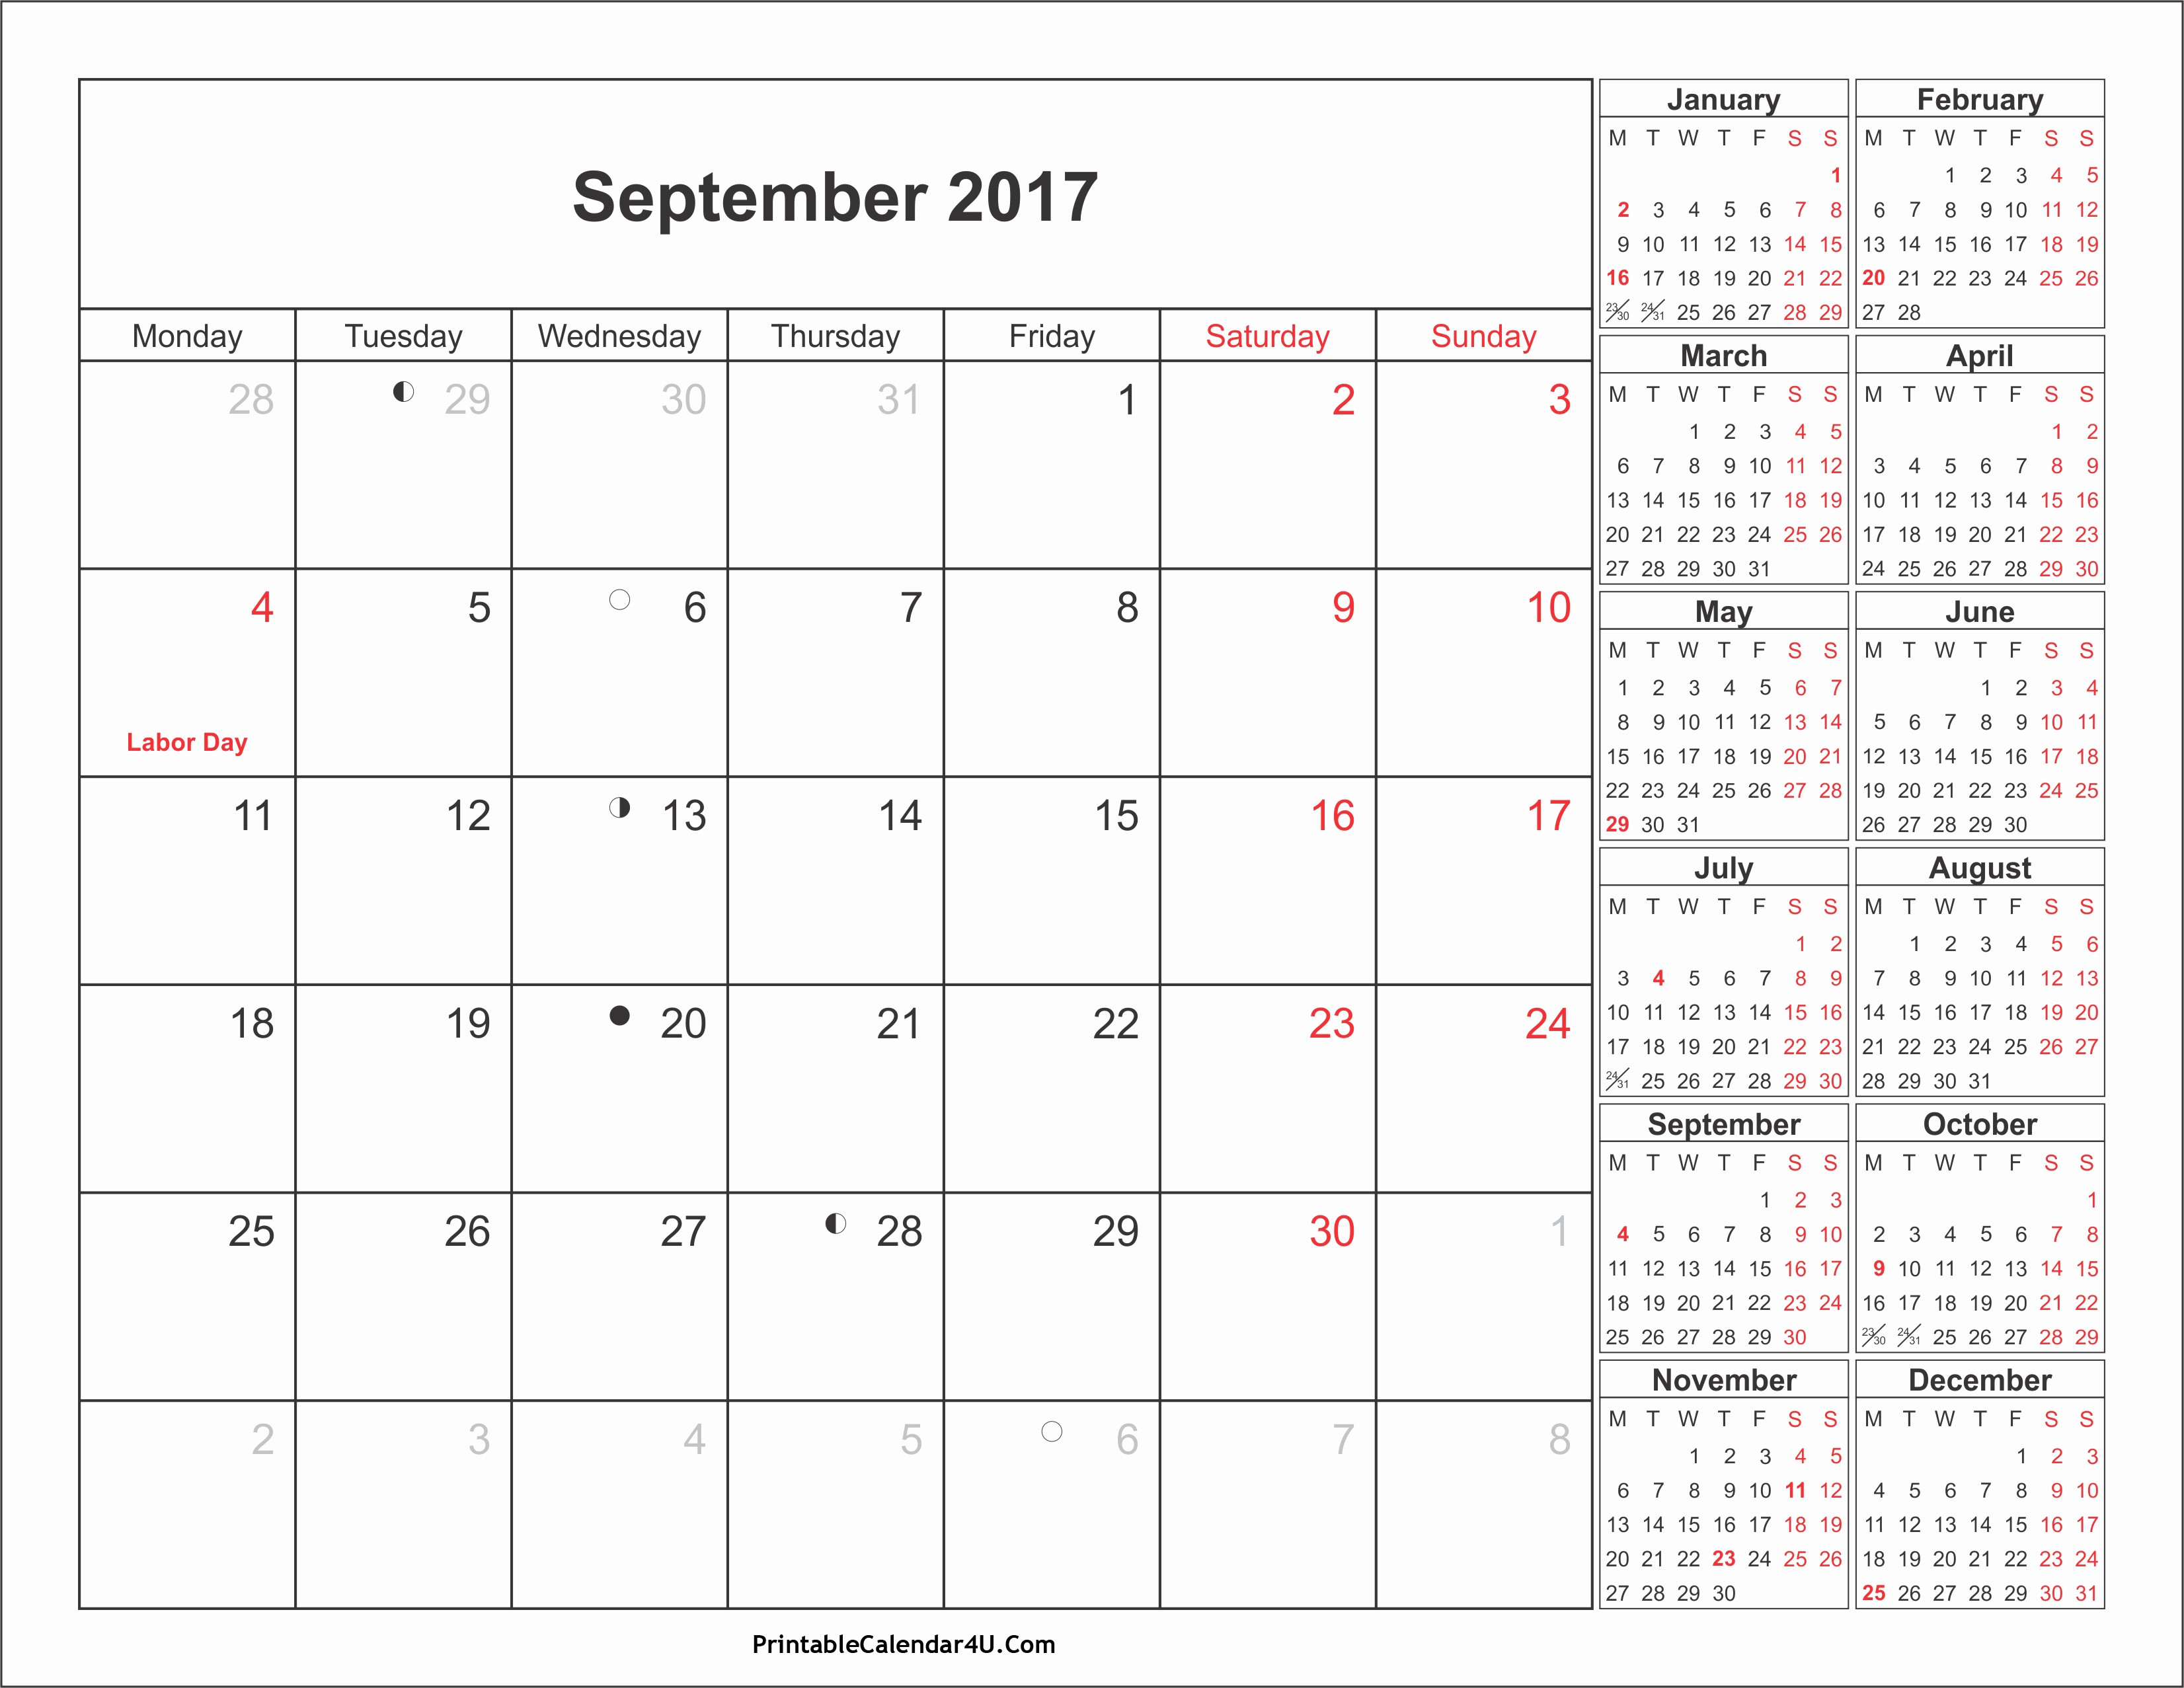 September 2017 Printable Calendar Word Lovely September 2017 Calendar Pdf